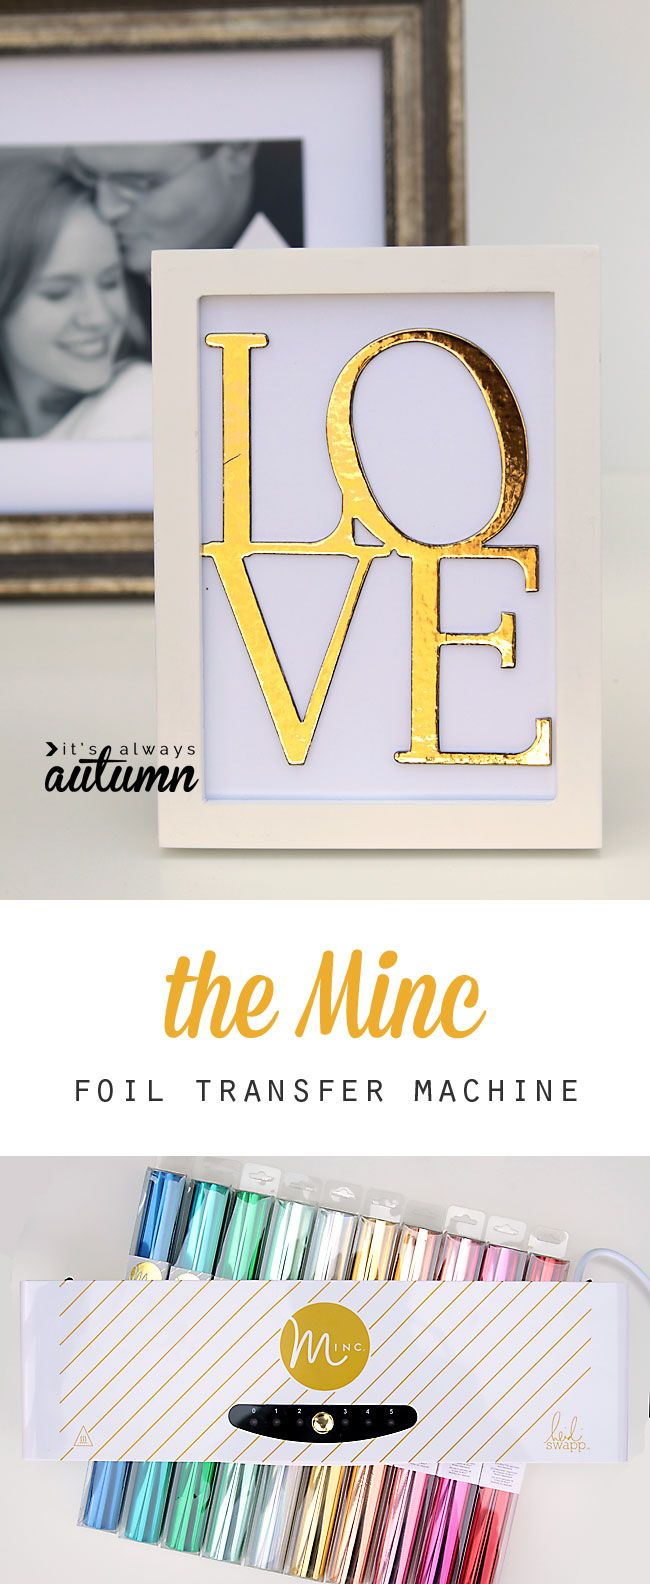 Review Of The Minc Foil Applicator From Heidi Swapp How